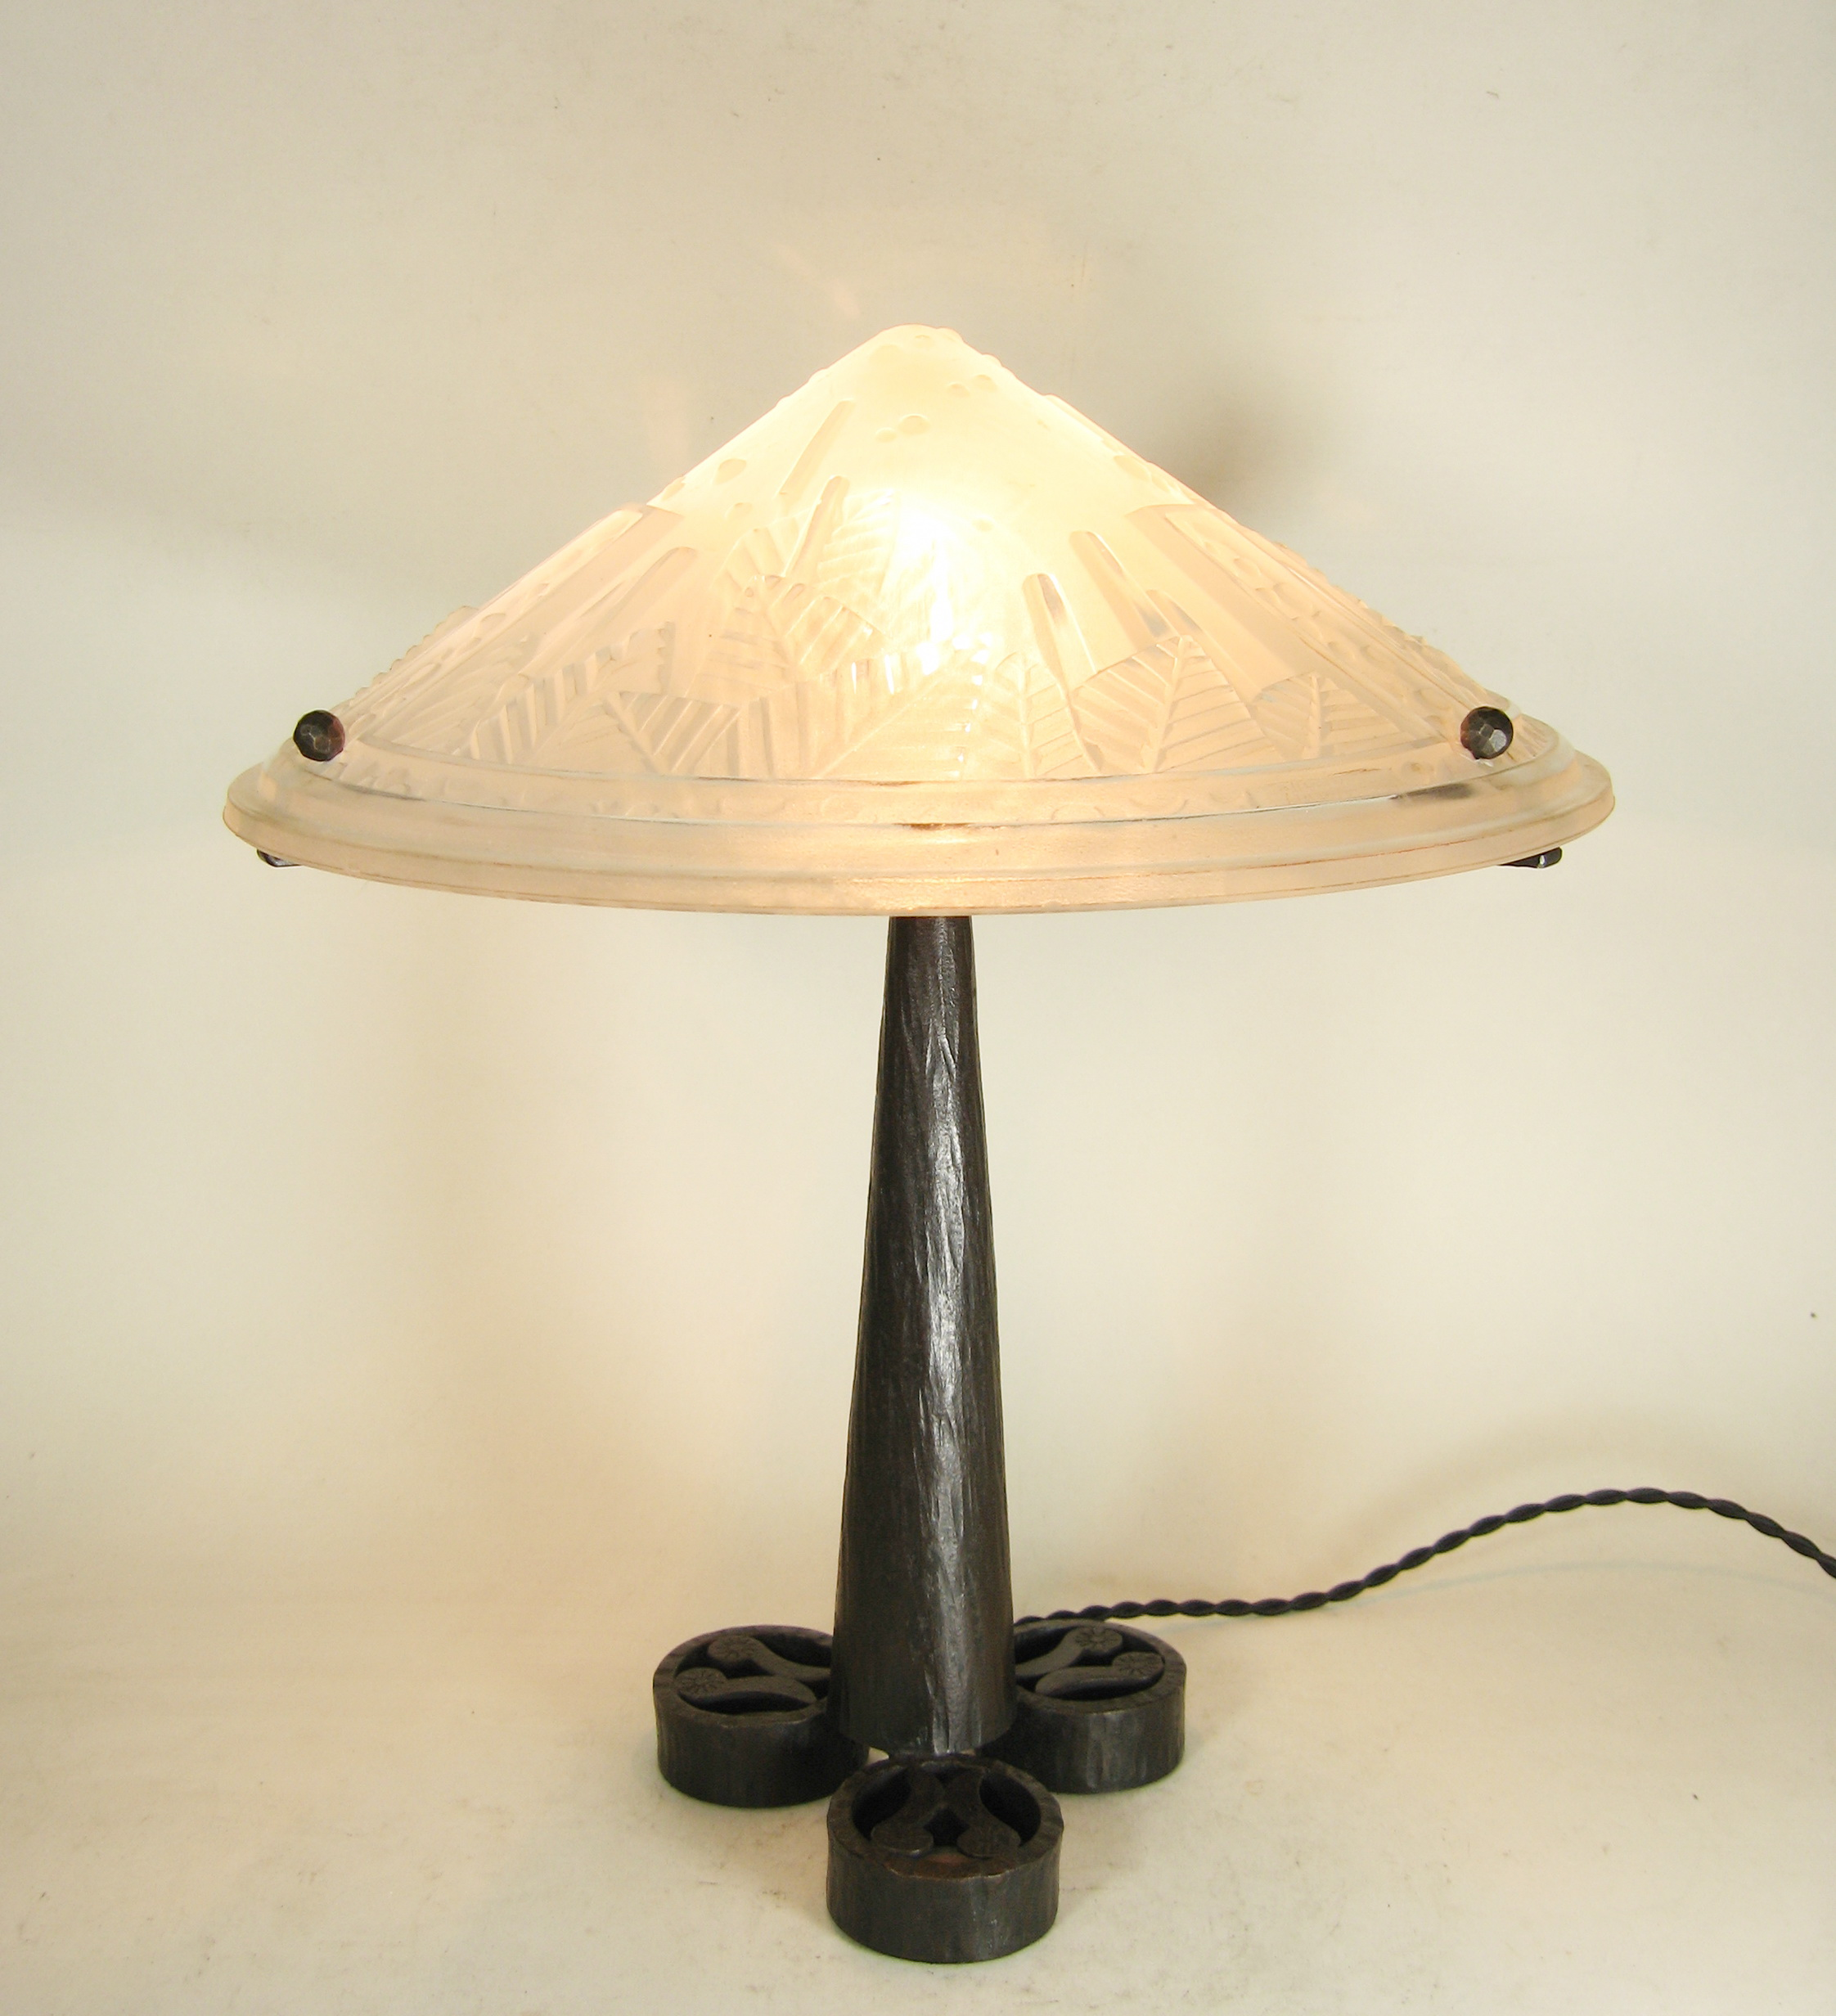 muller freres french 1925 art deco table lamp for sale antiques